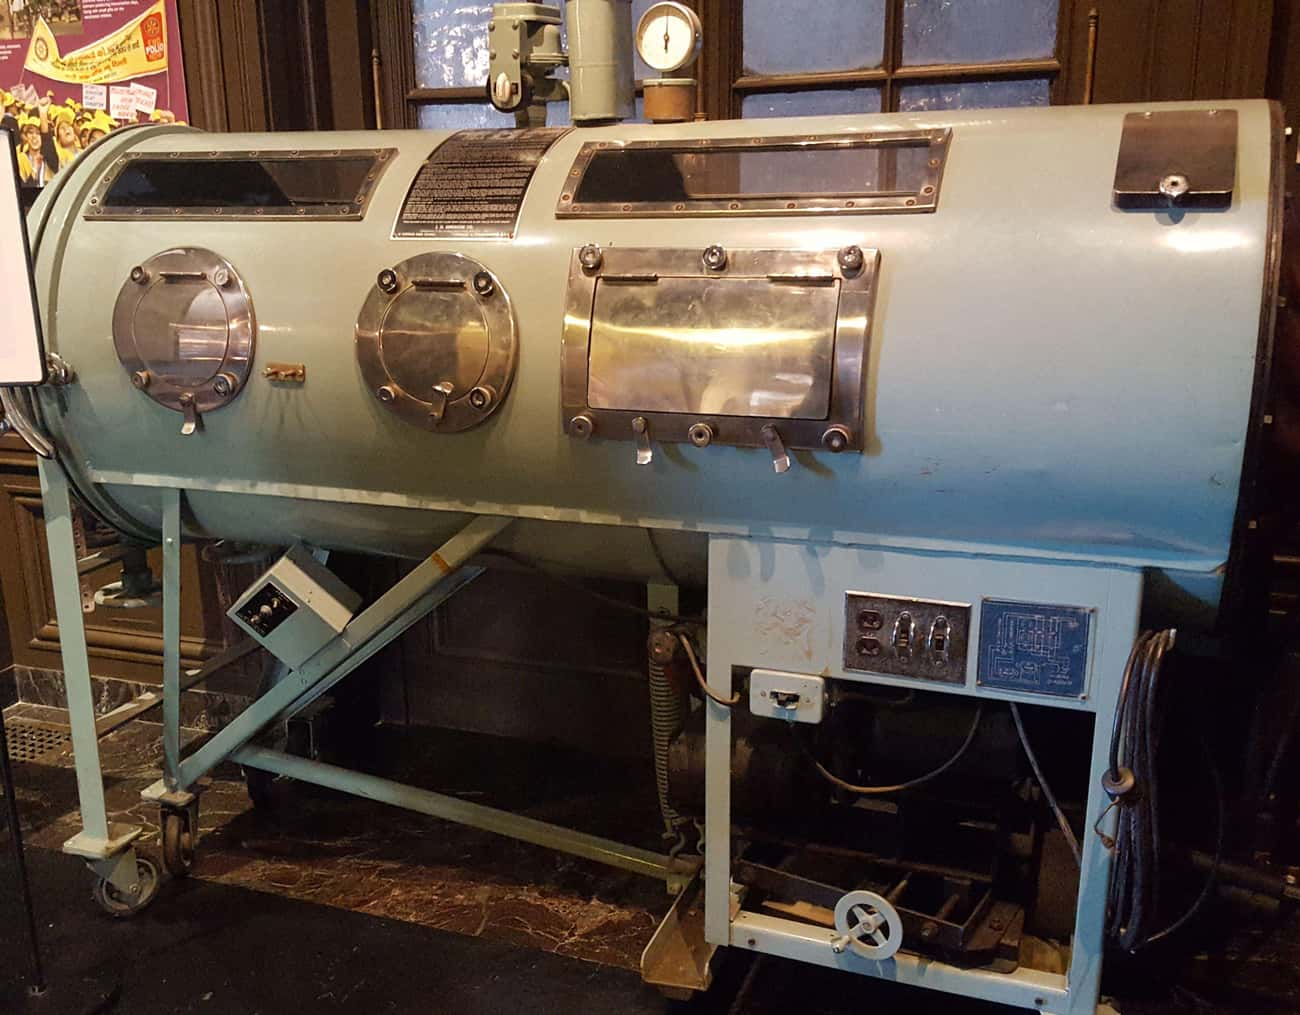 The Iron Lung Was Invented During The 1920s To Help Those Who'd Contracted Polio